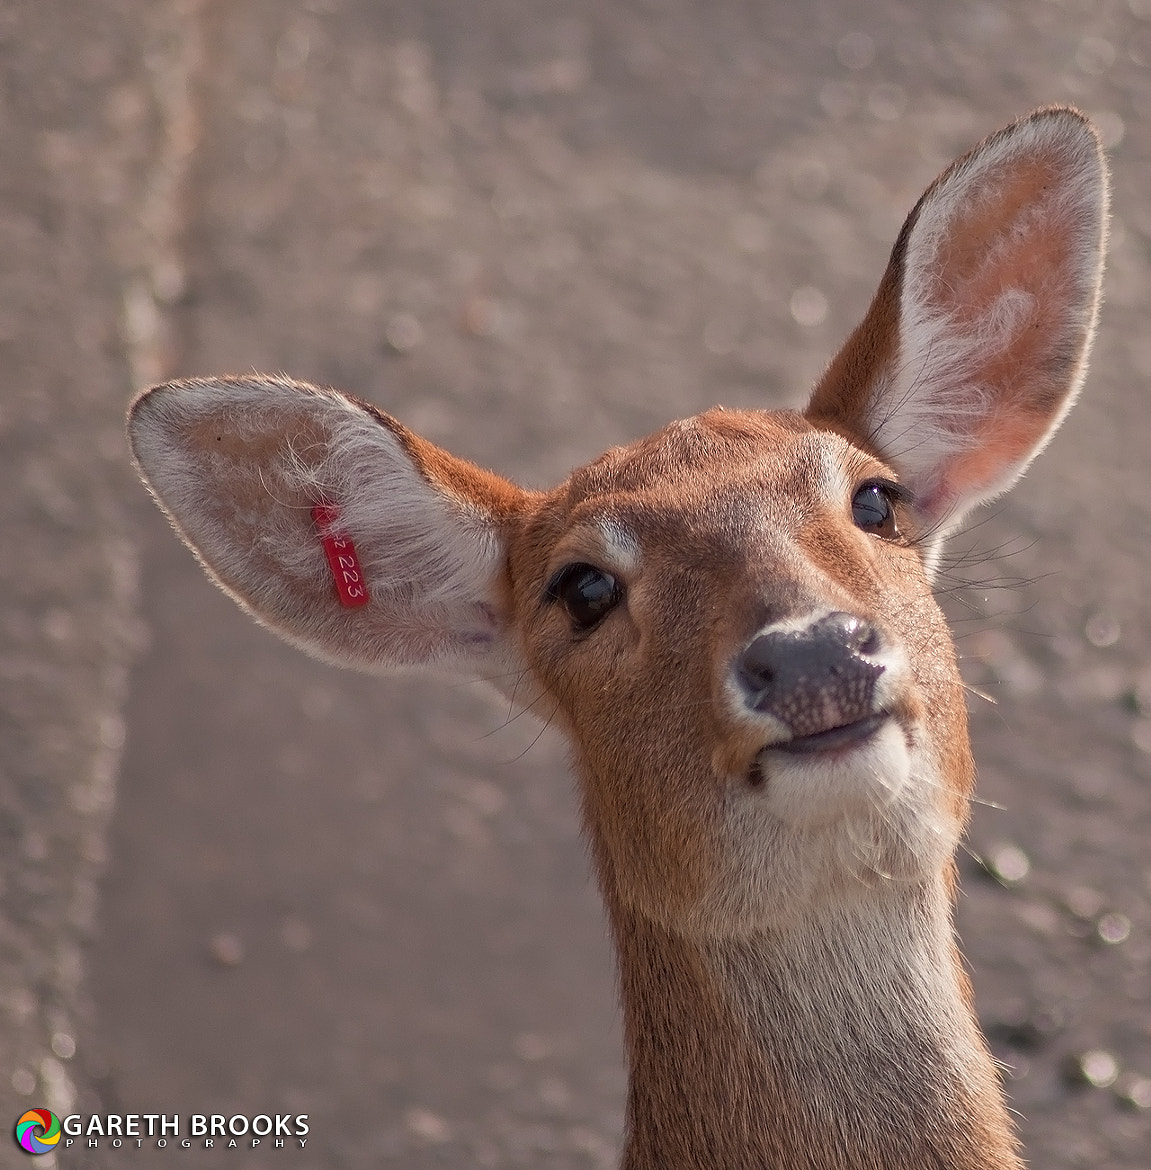 Photograph Oh Deer! Please get my good side! by Gareth Brooks on 500px